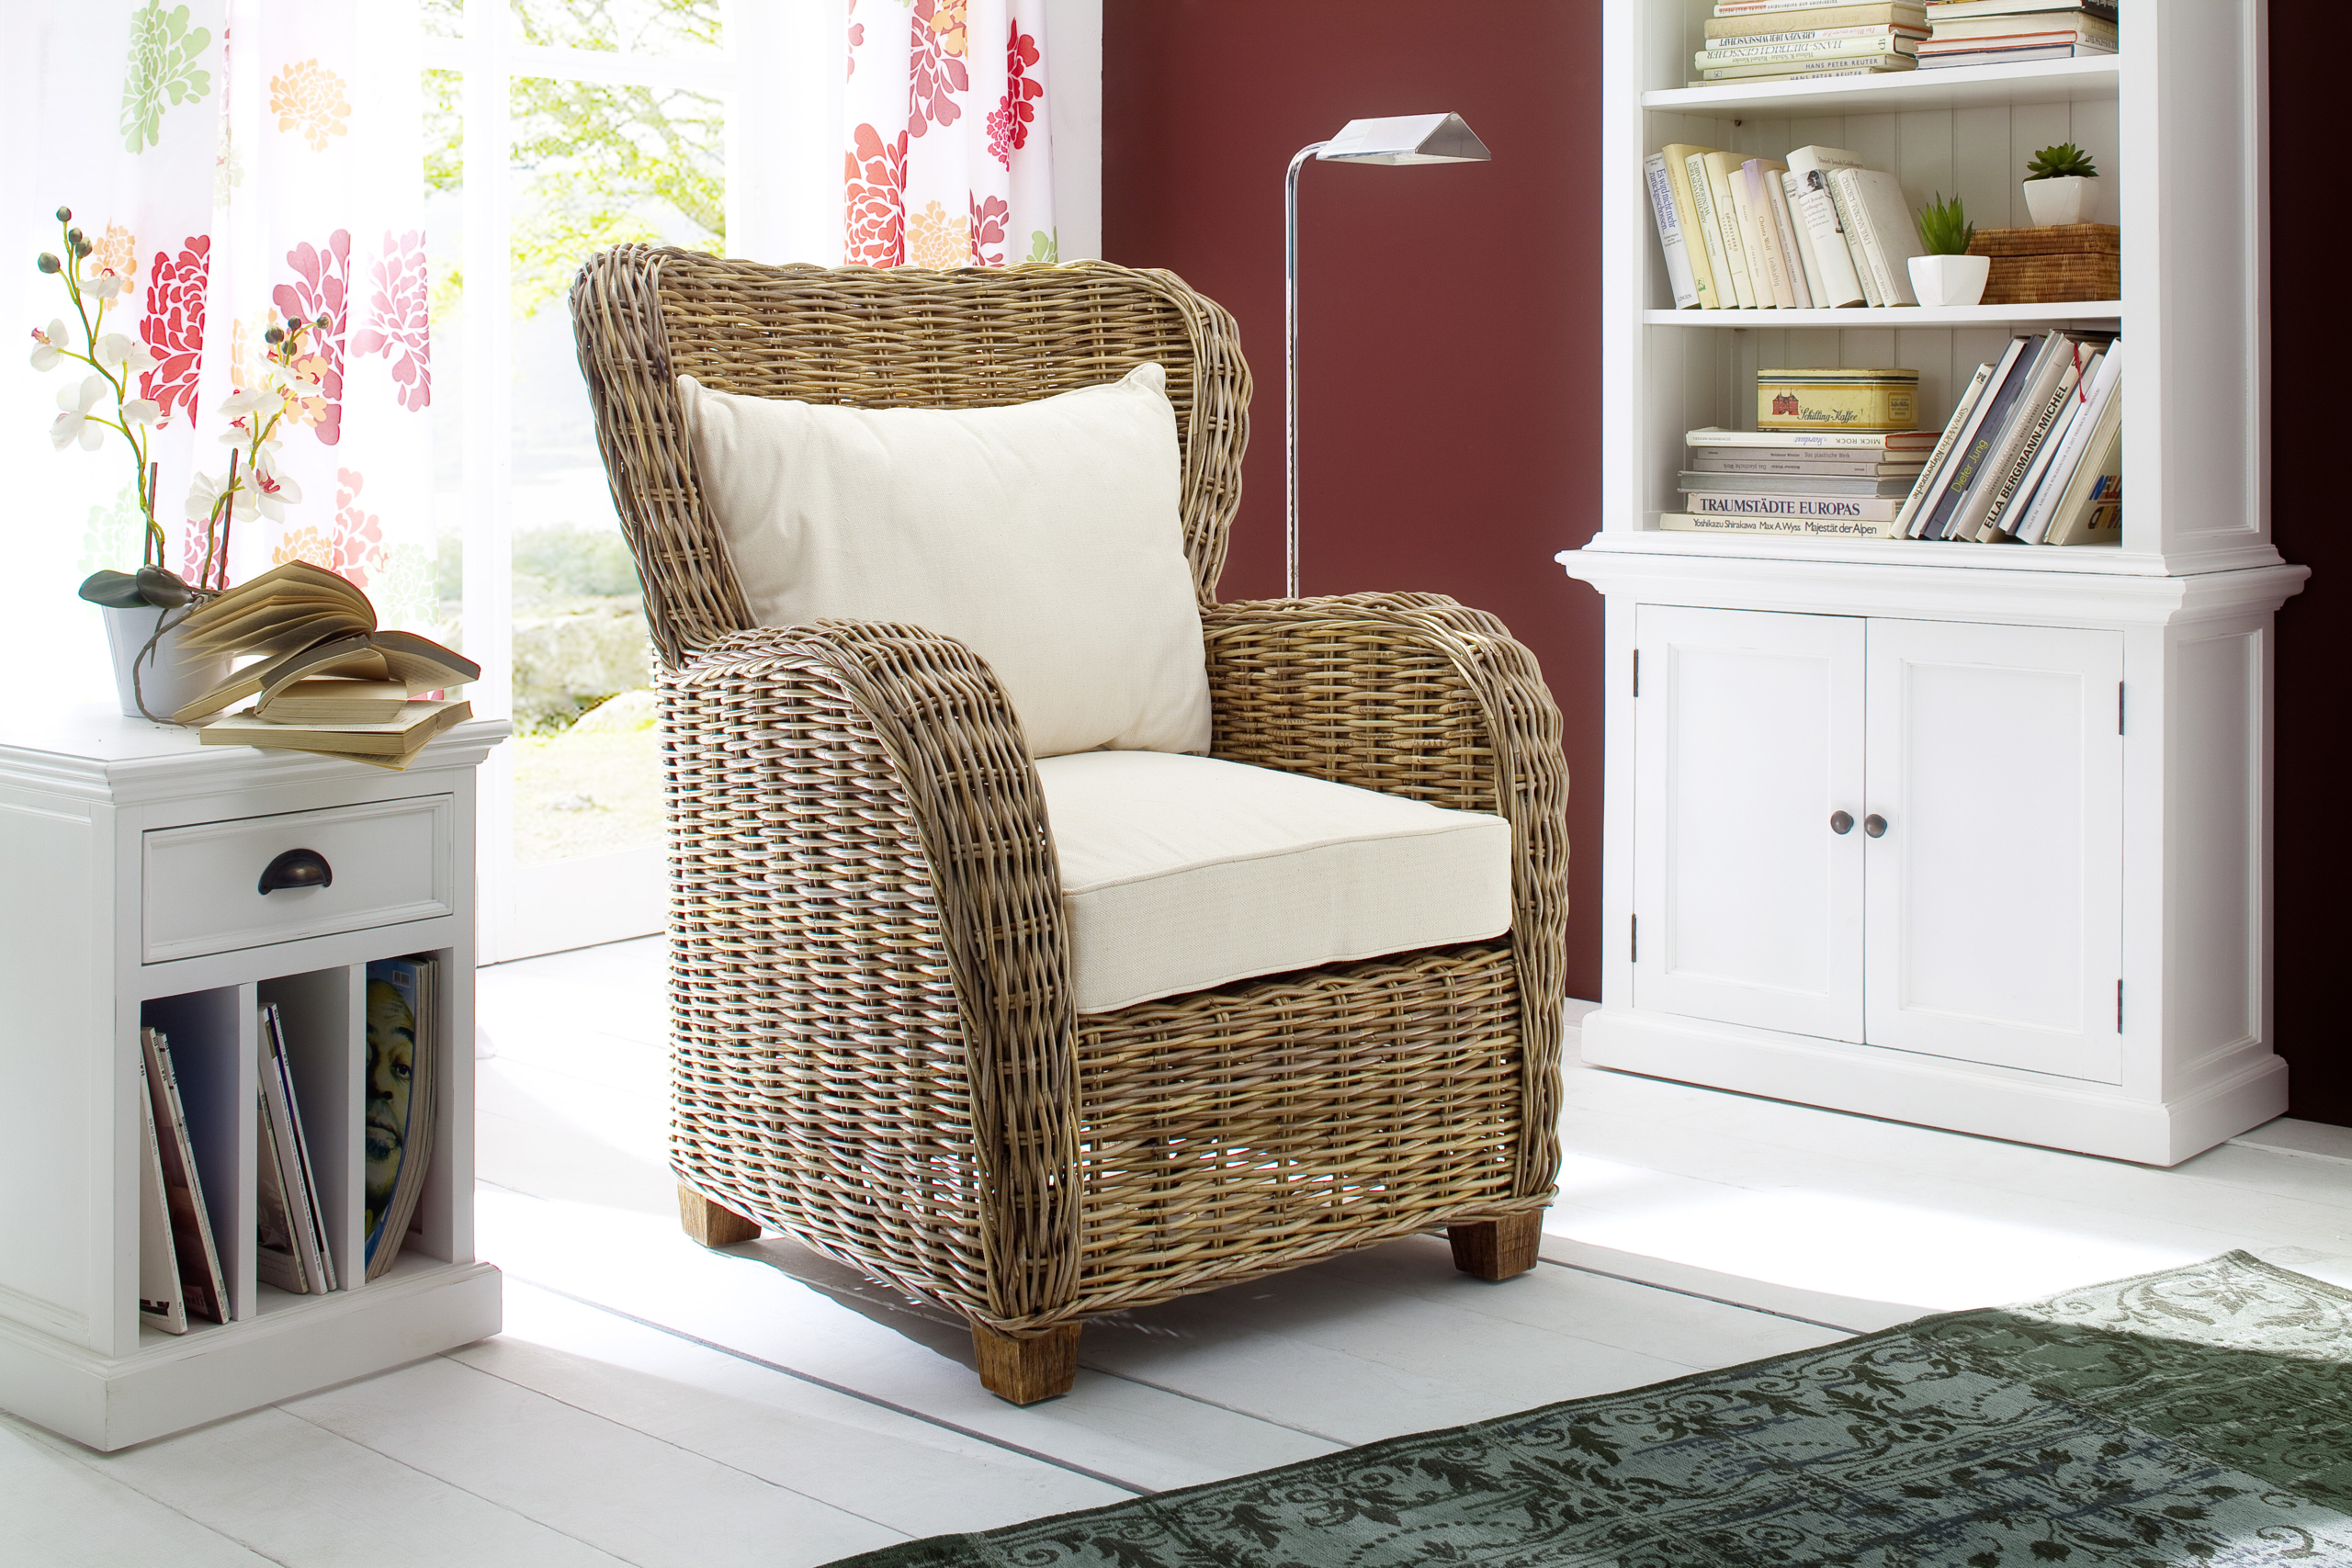 We've tapped top interior designers to share their insider secrets, tips, and advice to create a cool and cozy living room you'll want to hang out in. Rattan Living Room Chairs - Foter